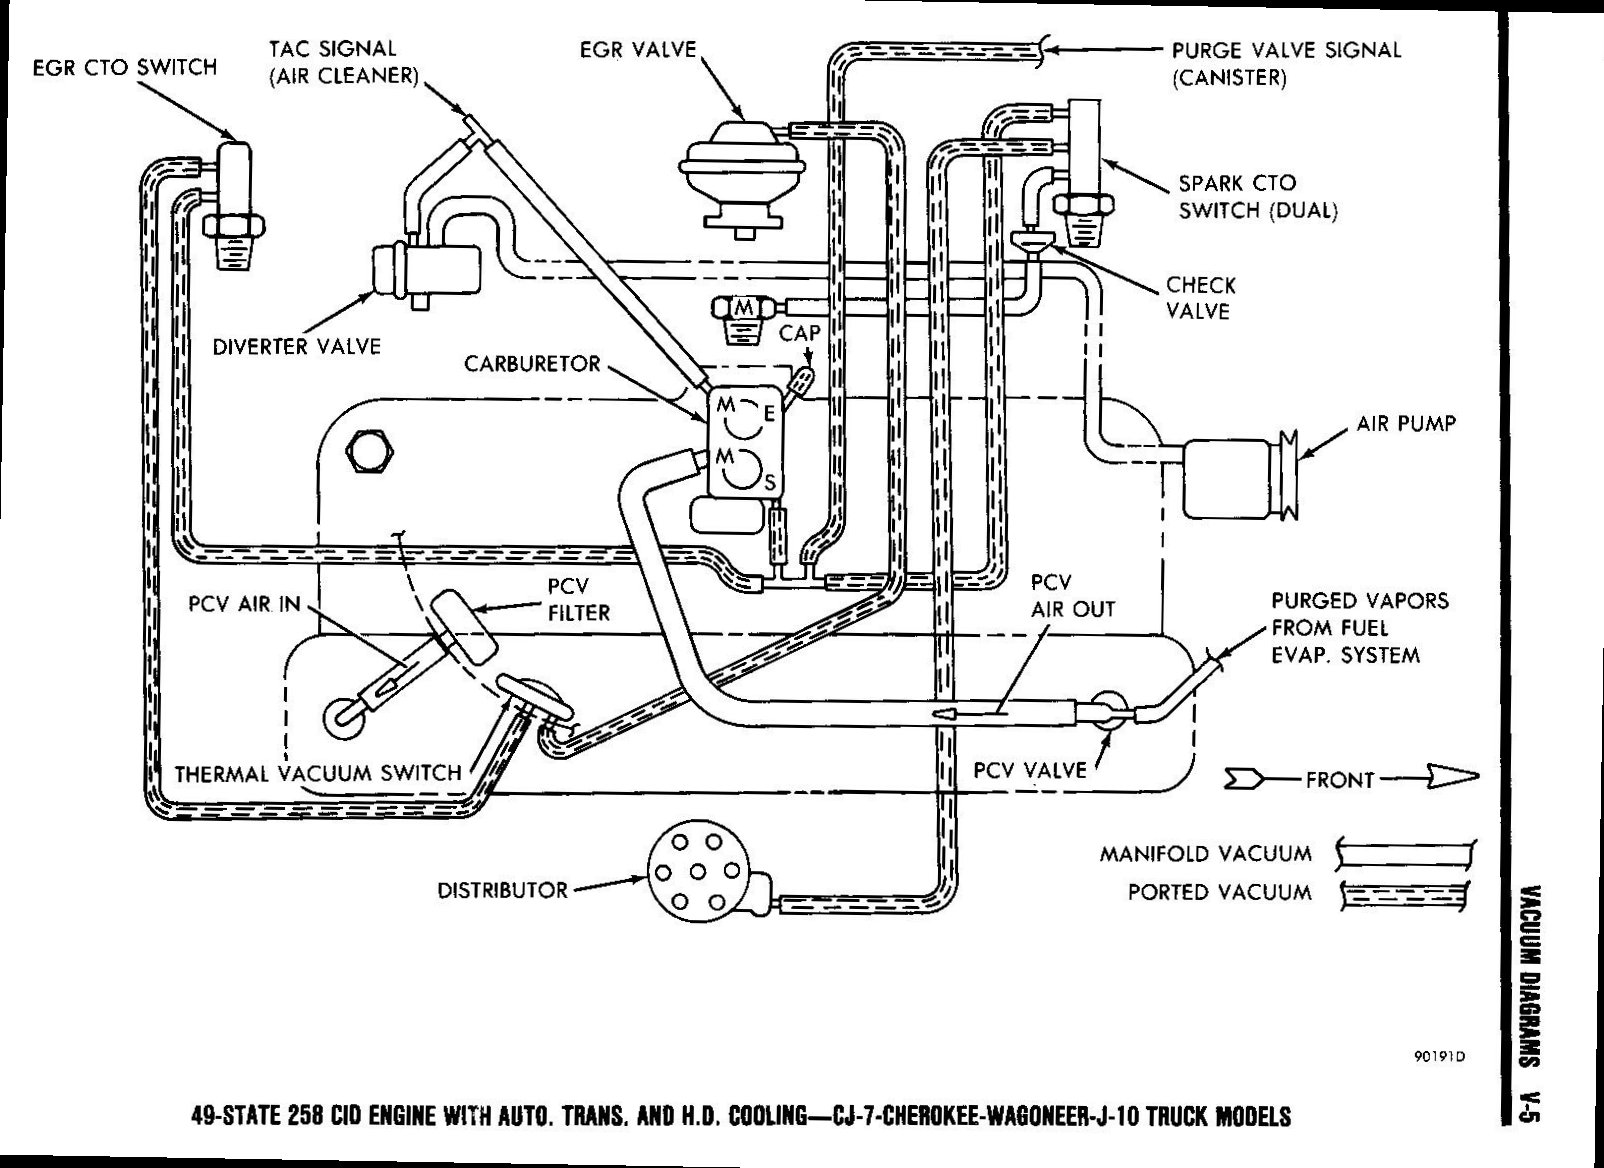 79 FSJ 6cyl_Vacuum 2 tom 'oljeep' collins fsj vacuum layout page 1978 Corvette Wiring Diagram at crackthecode.co